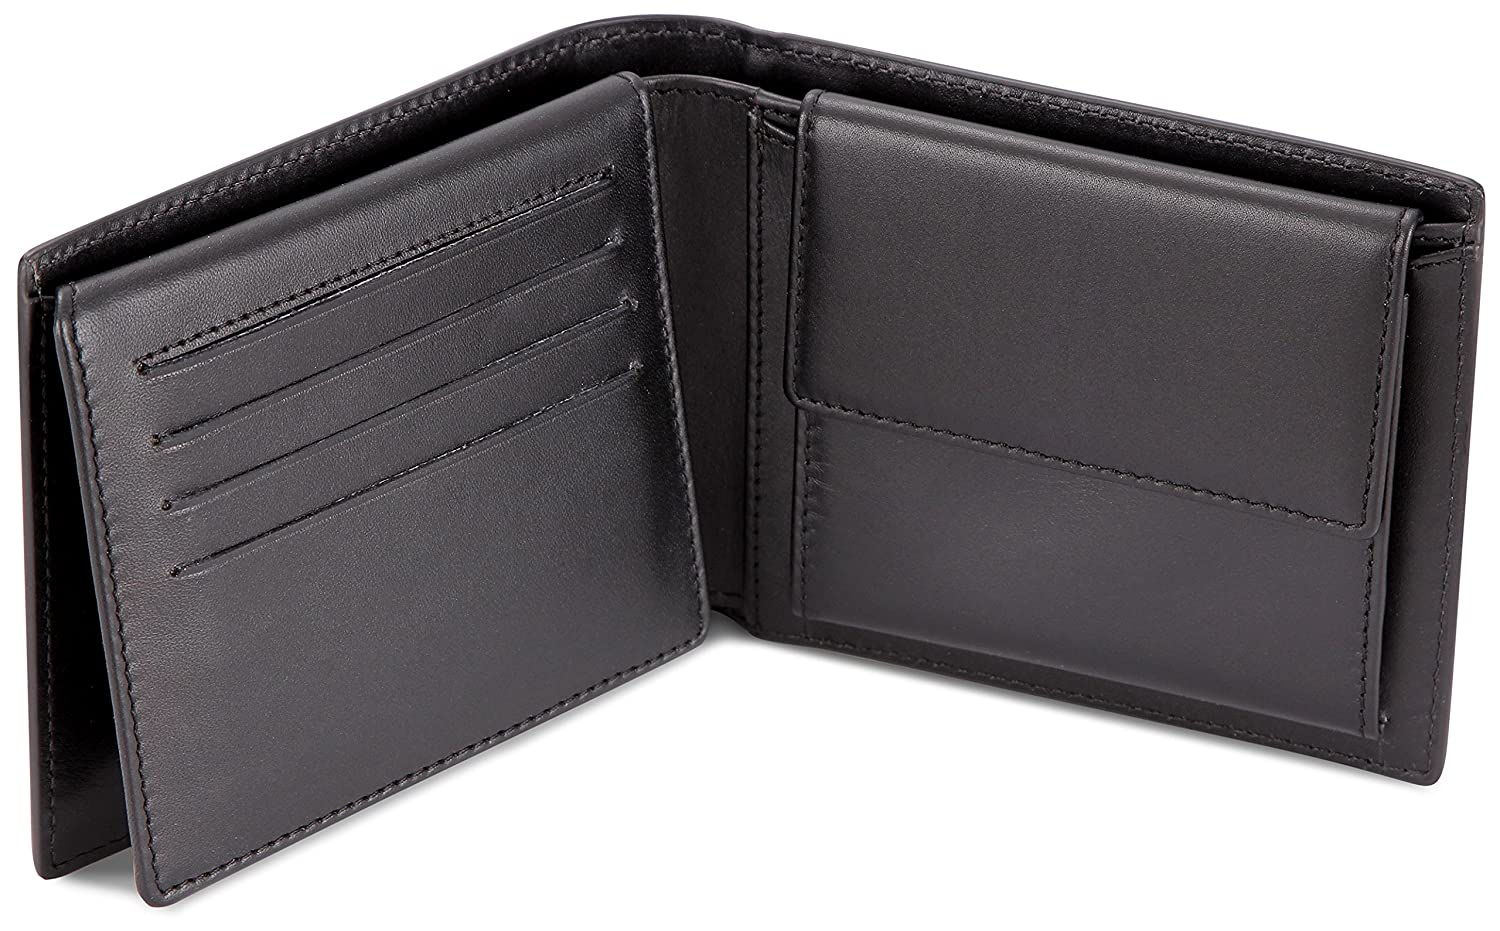 LEABAGS Illinois genuine calfskin leather wallet in vintage style